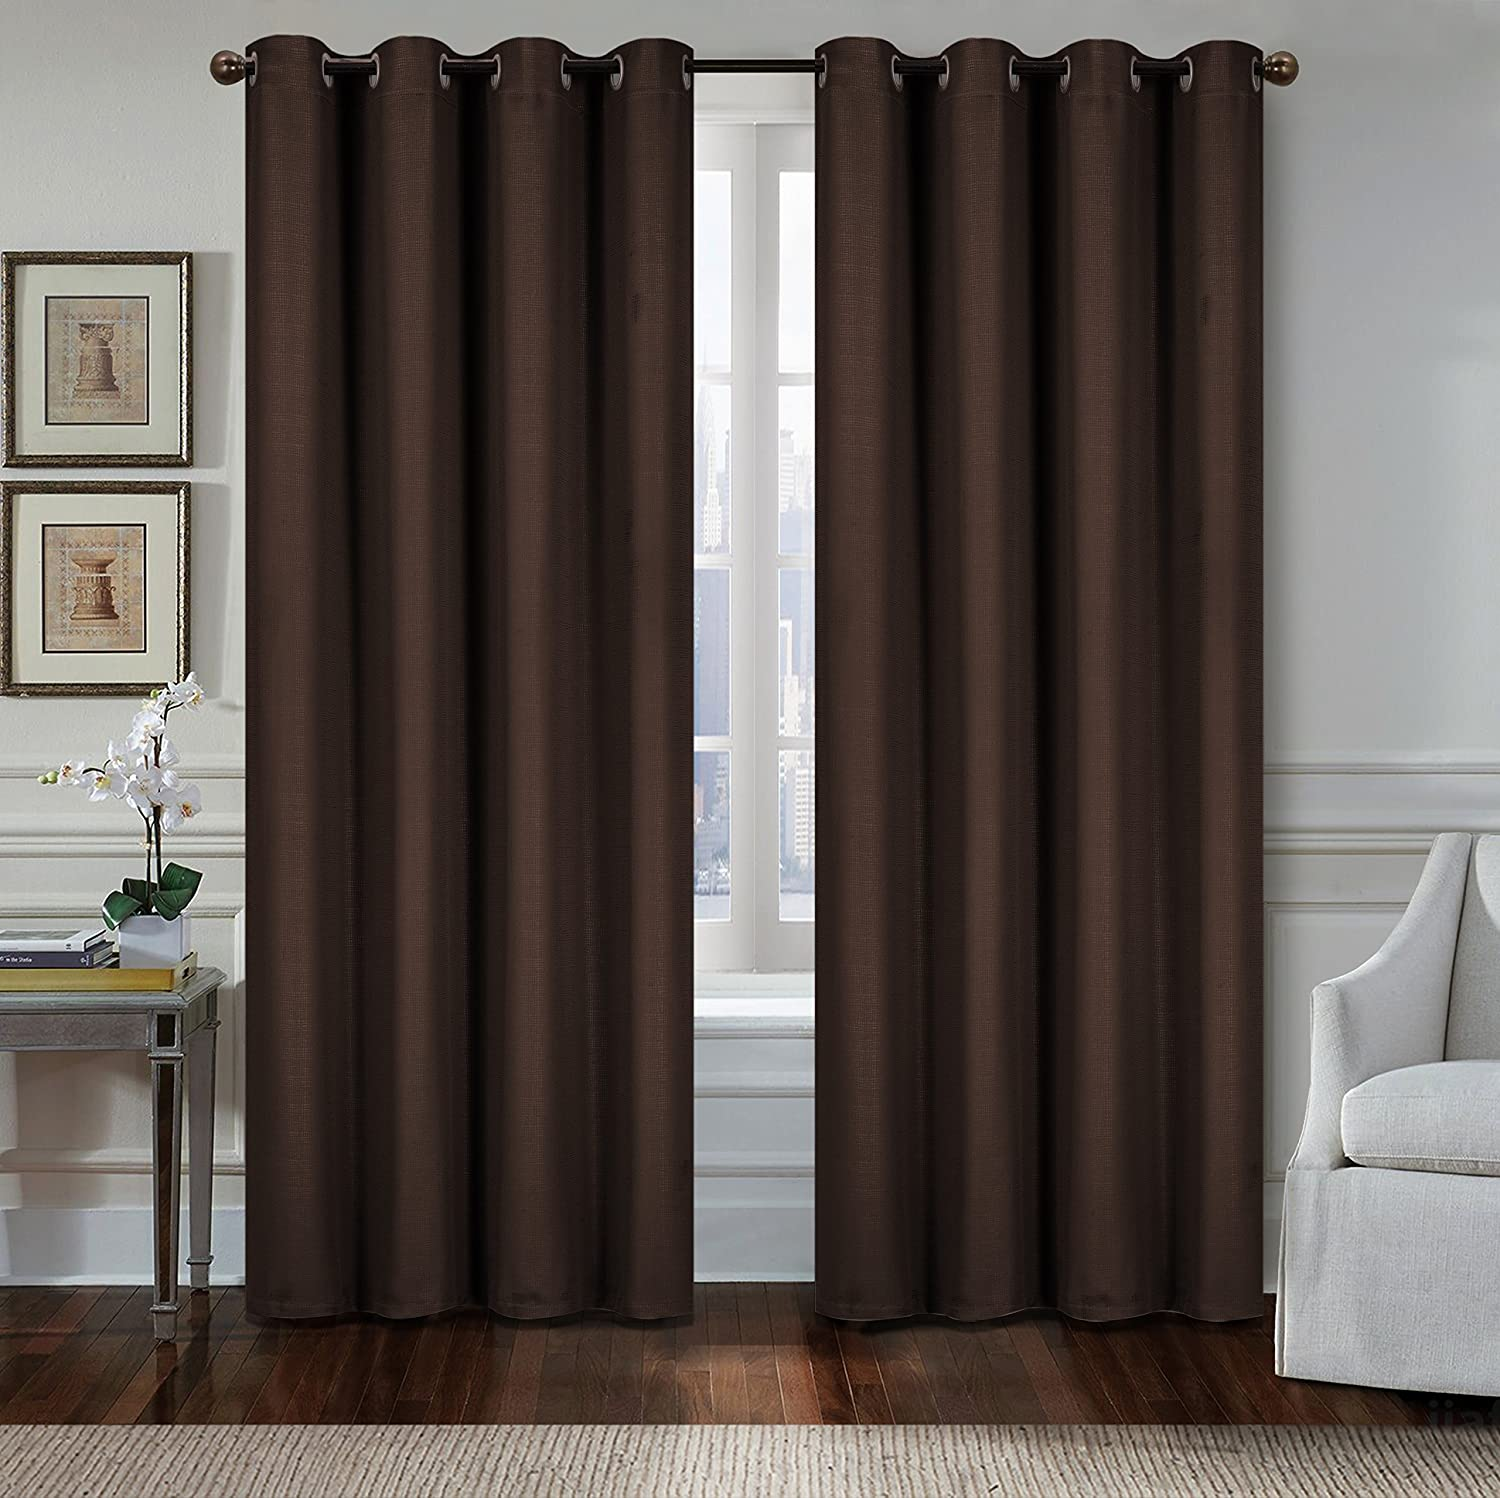 All American Collection New 2 Panel Curtain Set Solid Embossed Blackout with 8 Grommets Chocolate